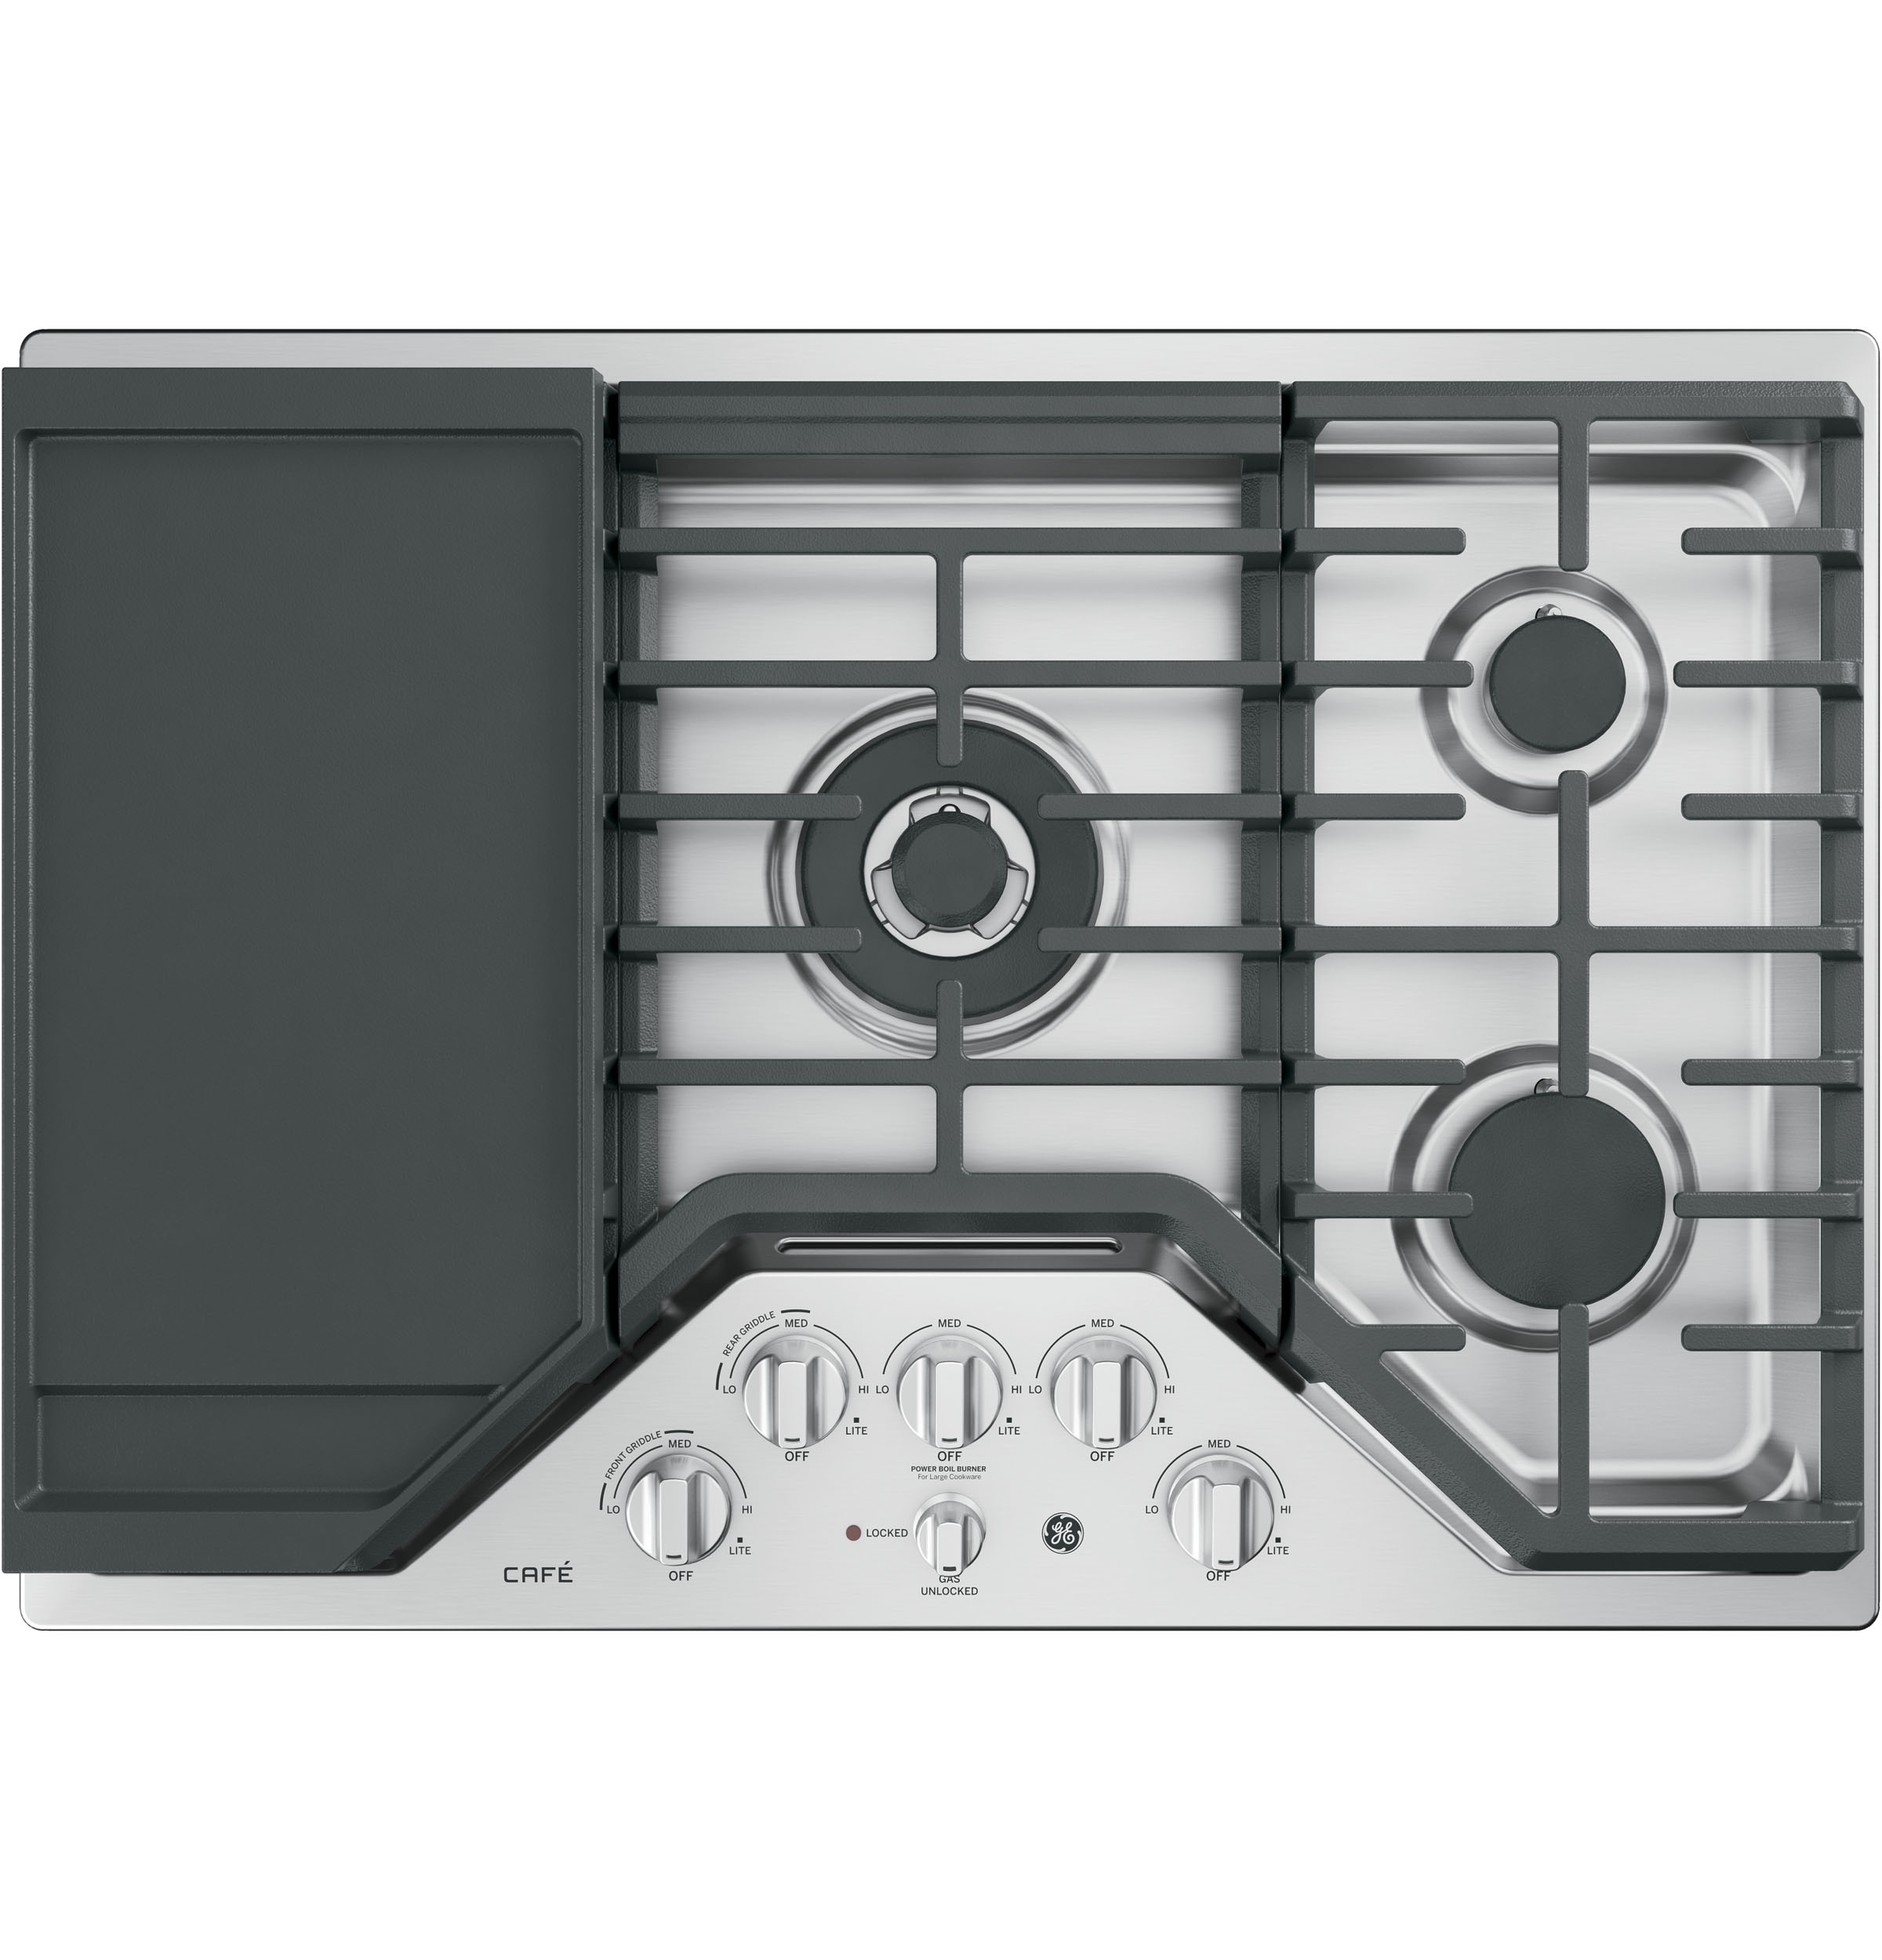 "GE Cafe GE Café™ Series 30"" Built-In Gas Cooktop"